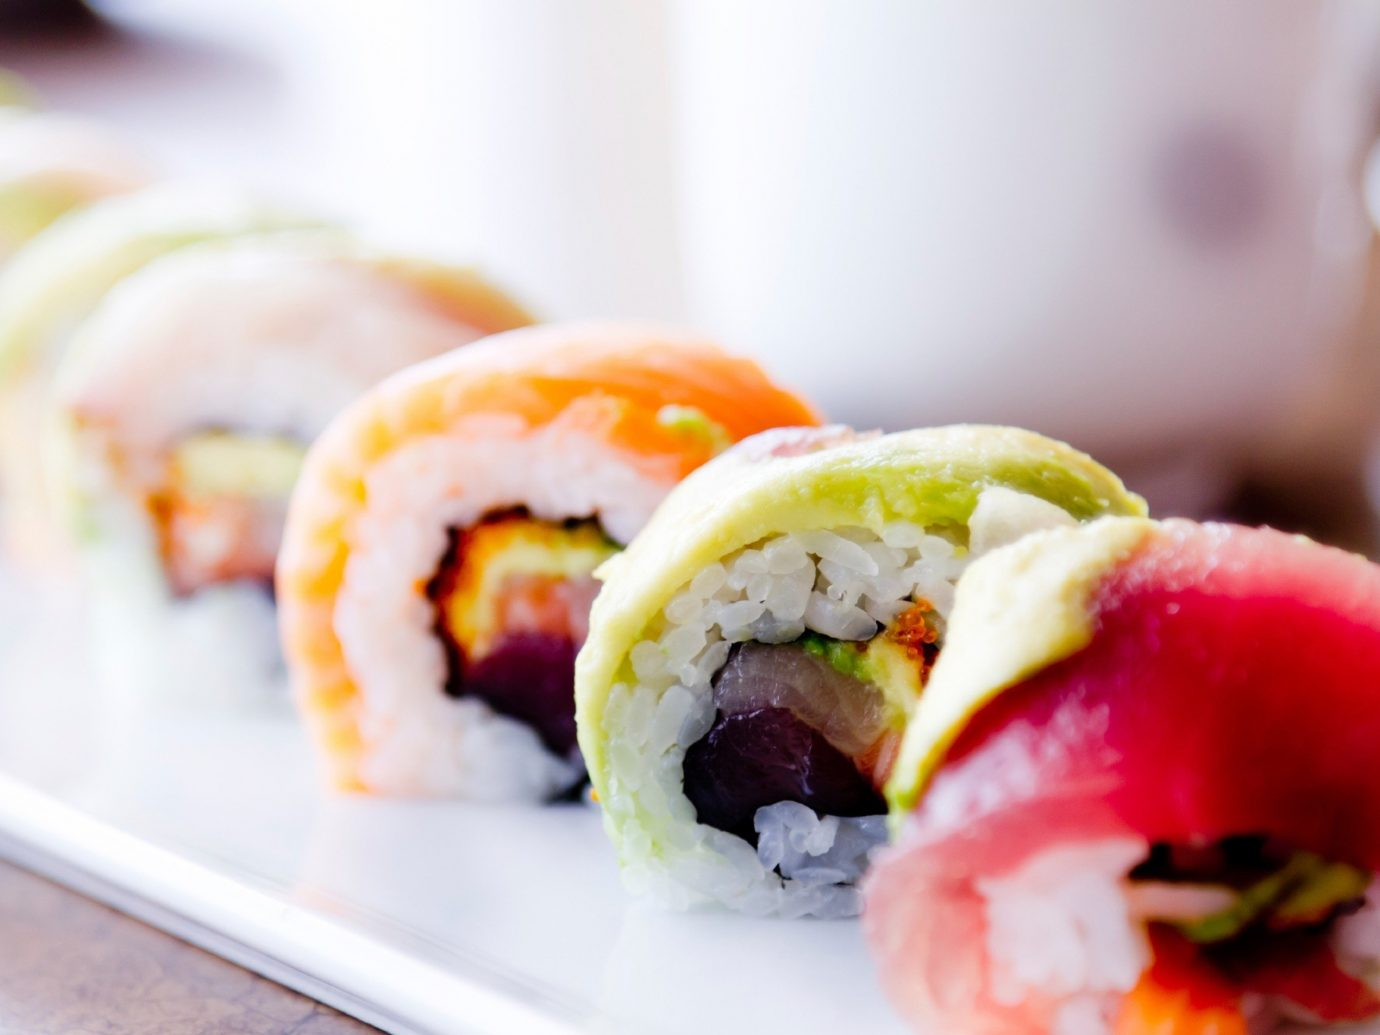 Offbeat dish food sushi indoor cuisine plate gimbap asian food california roll meal japanese cuisine close